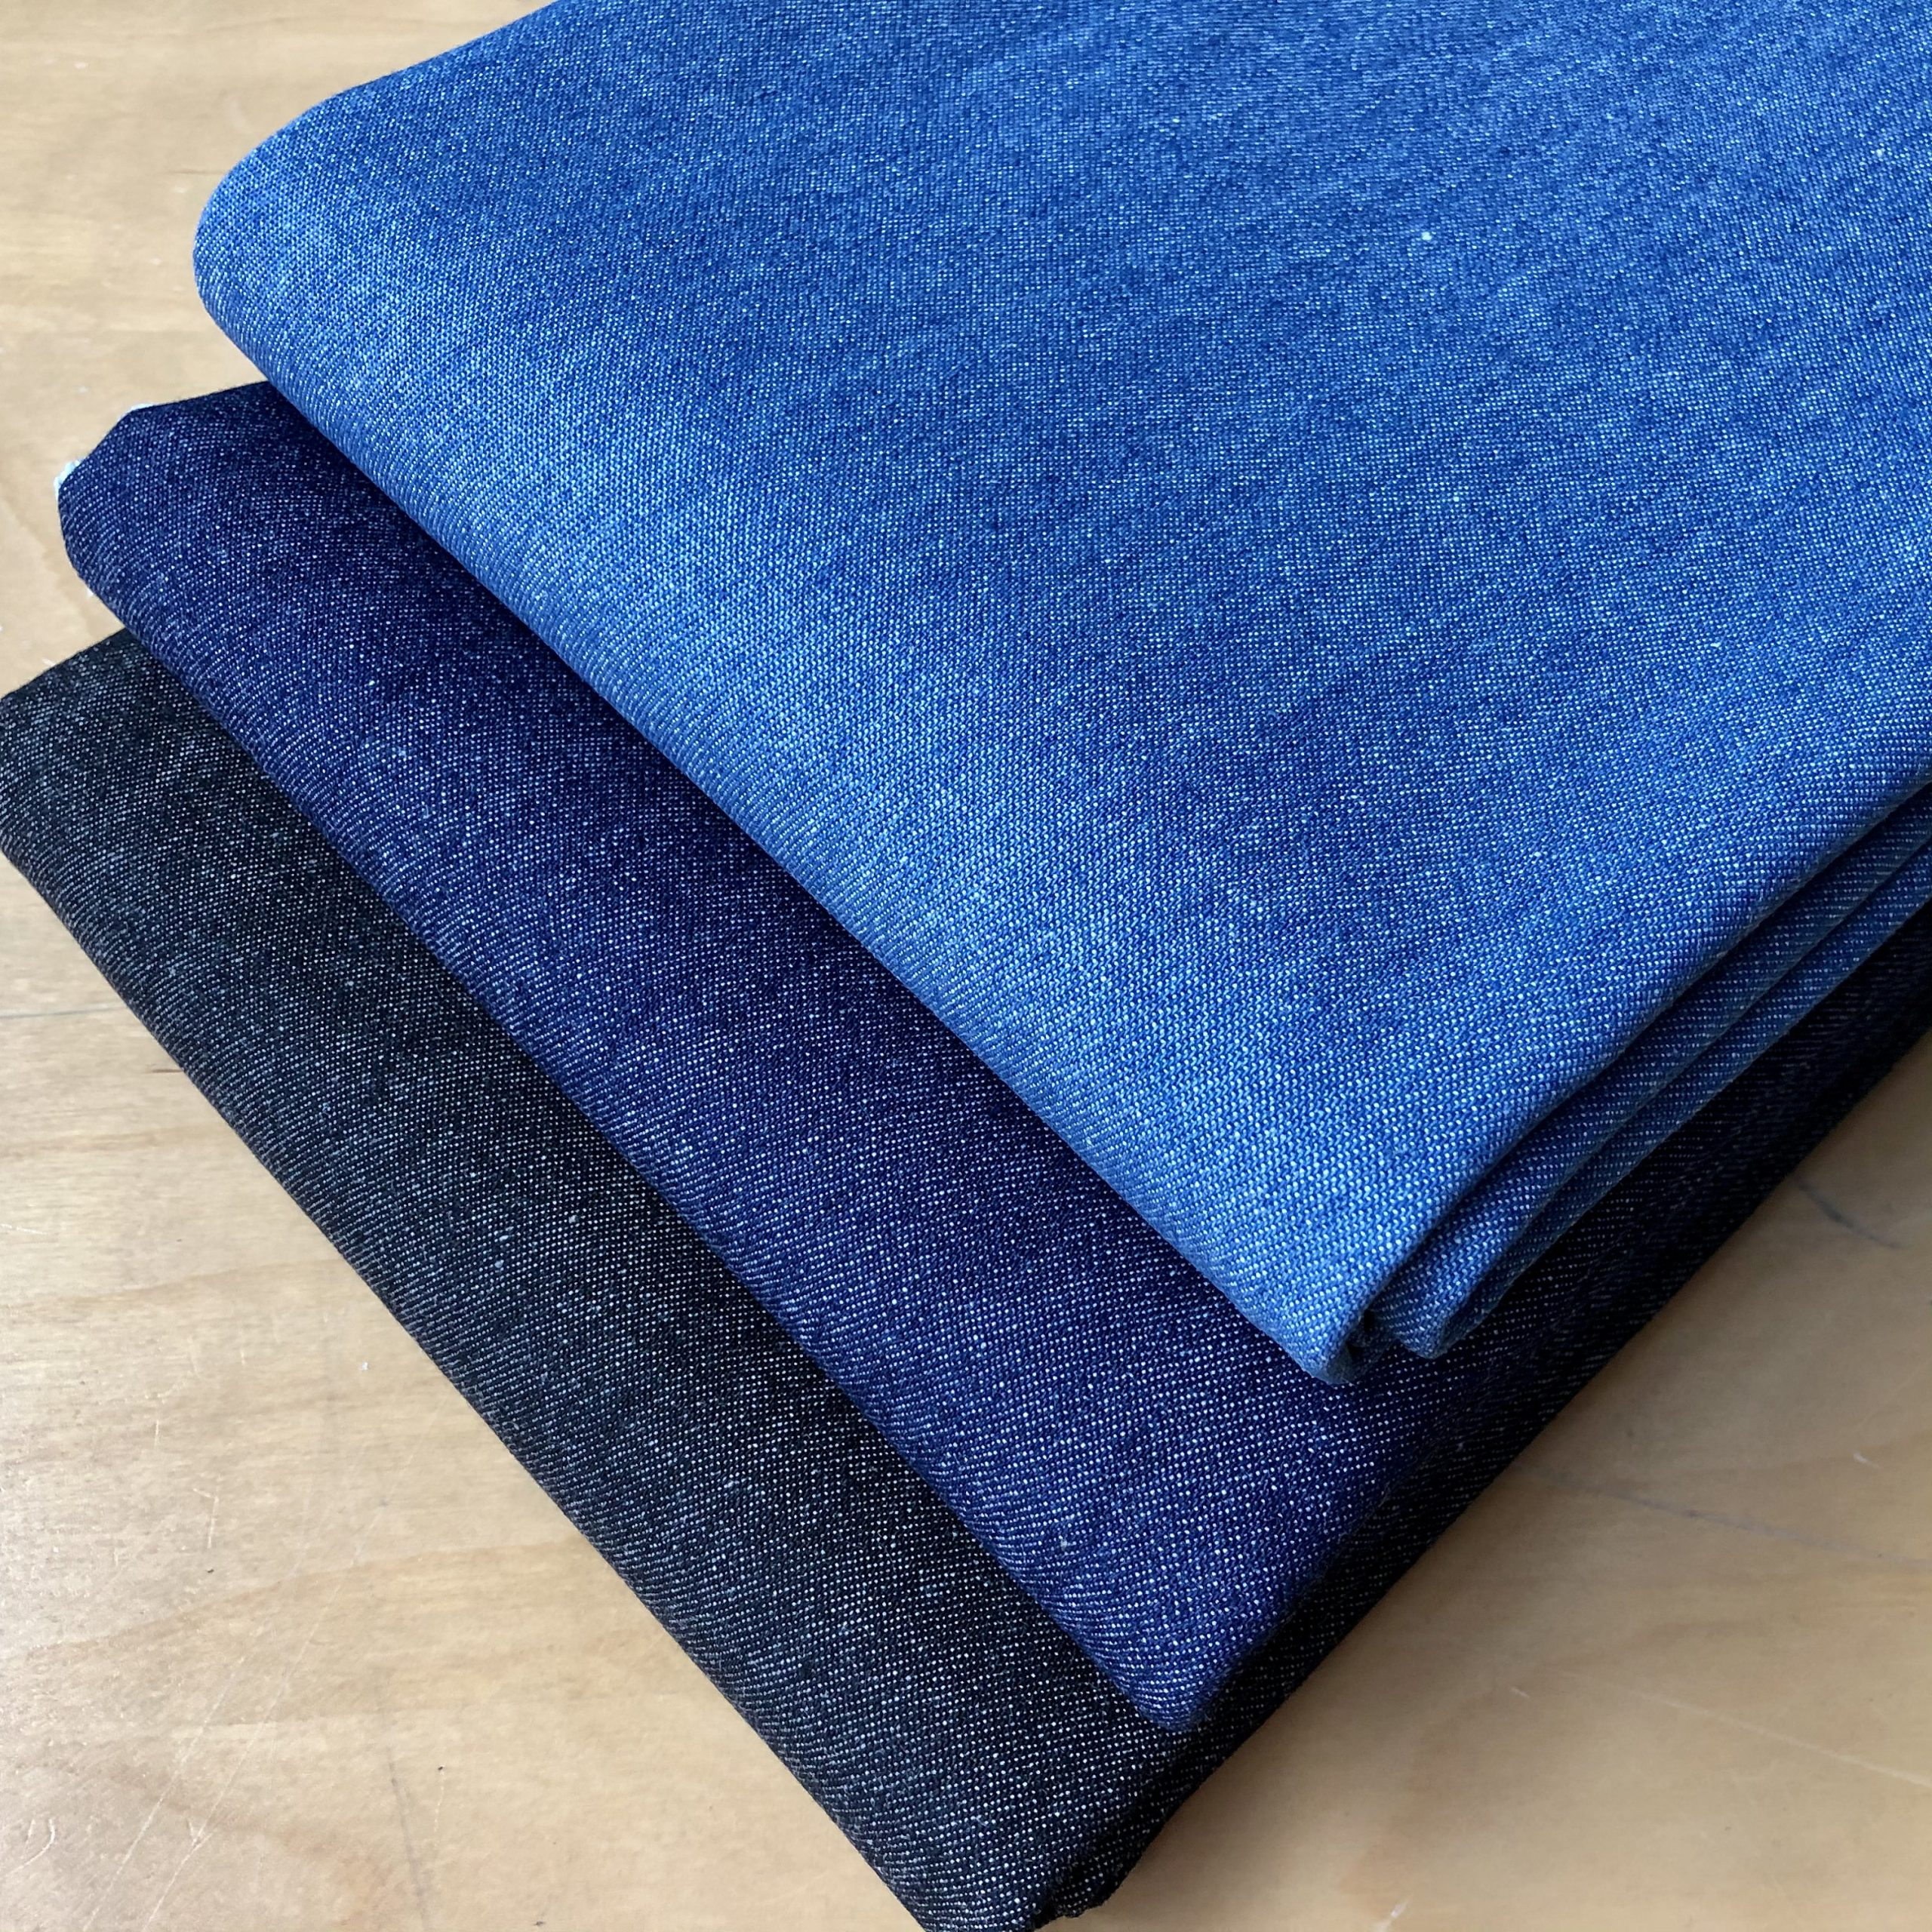 """7.5oz Denim Fabric Washed Jeans Dressmaking Cotton Upholstery Material – 57""""/148cm wide"""